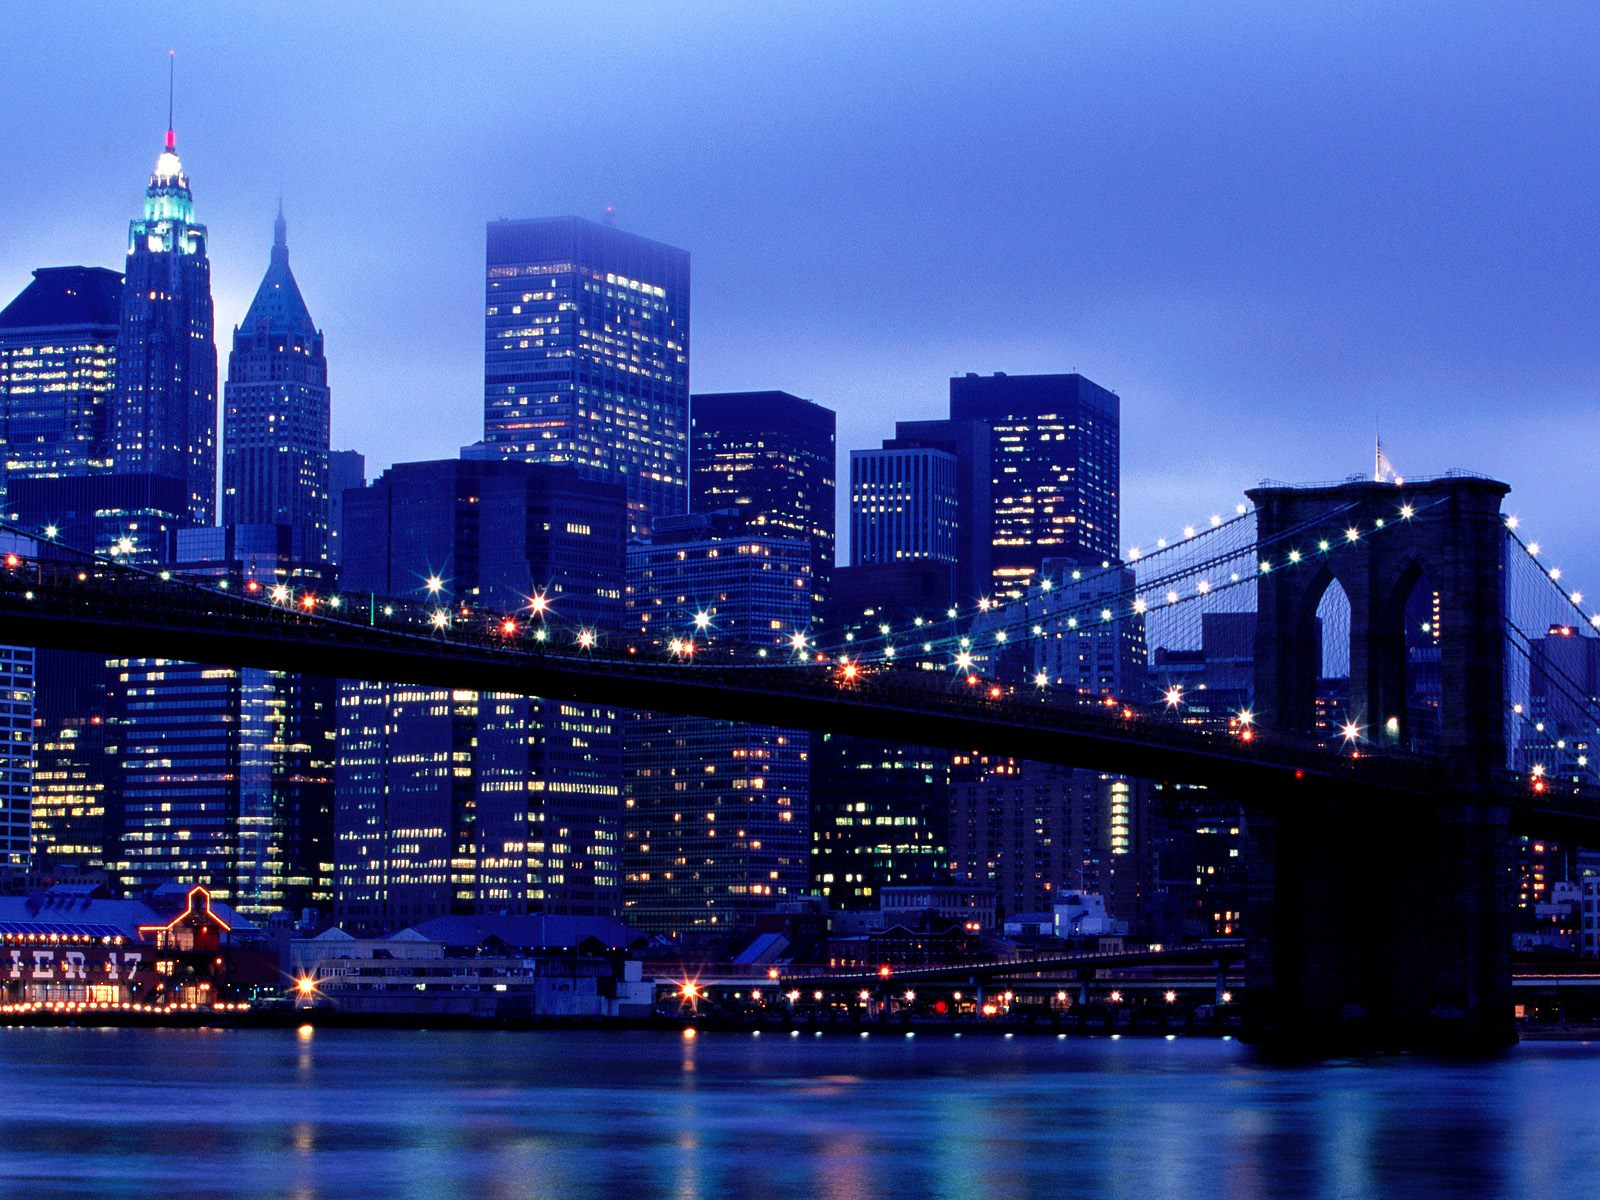 http://3.bp.blogspot.com/_e45GK4i1E8M/TS32fgbc-vI/AAAAAAAADIc/IUYPcInU92I/s1600/Manhattan_Skyline_From_Brooklyn_New_York.jpg